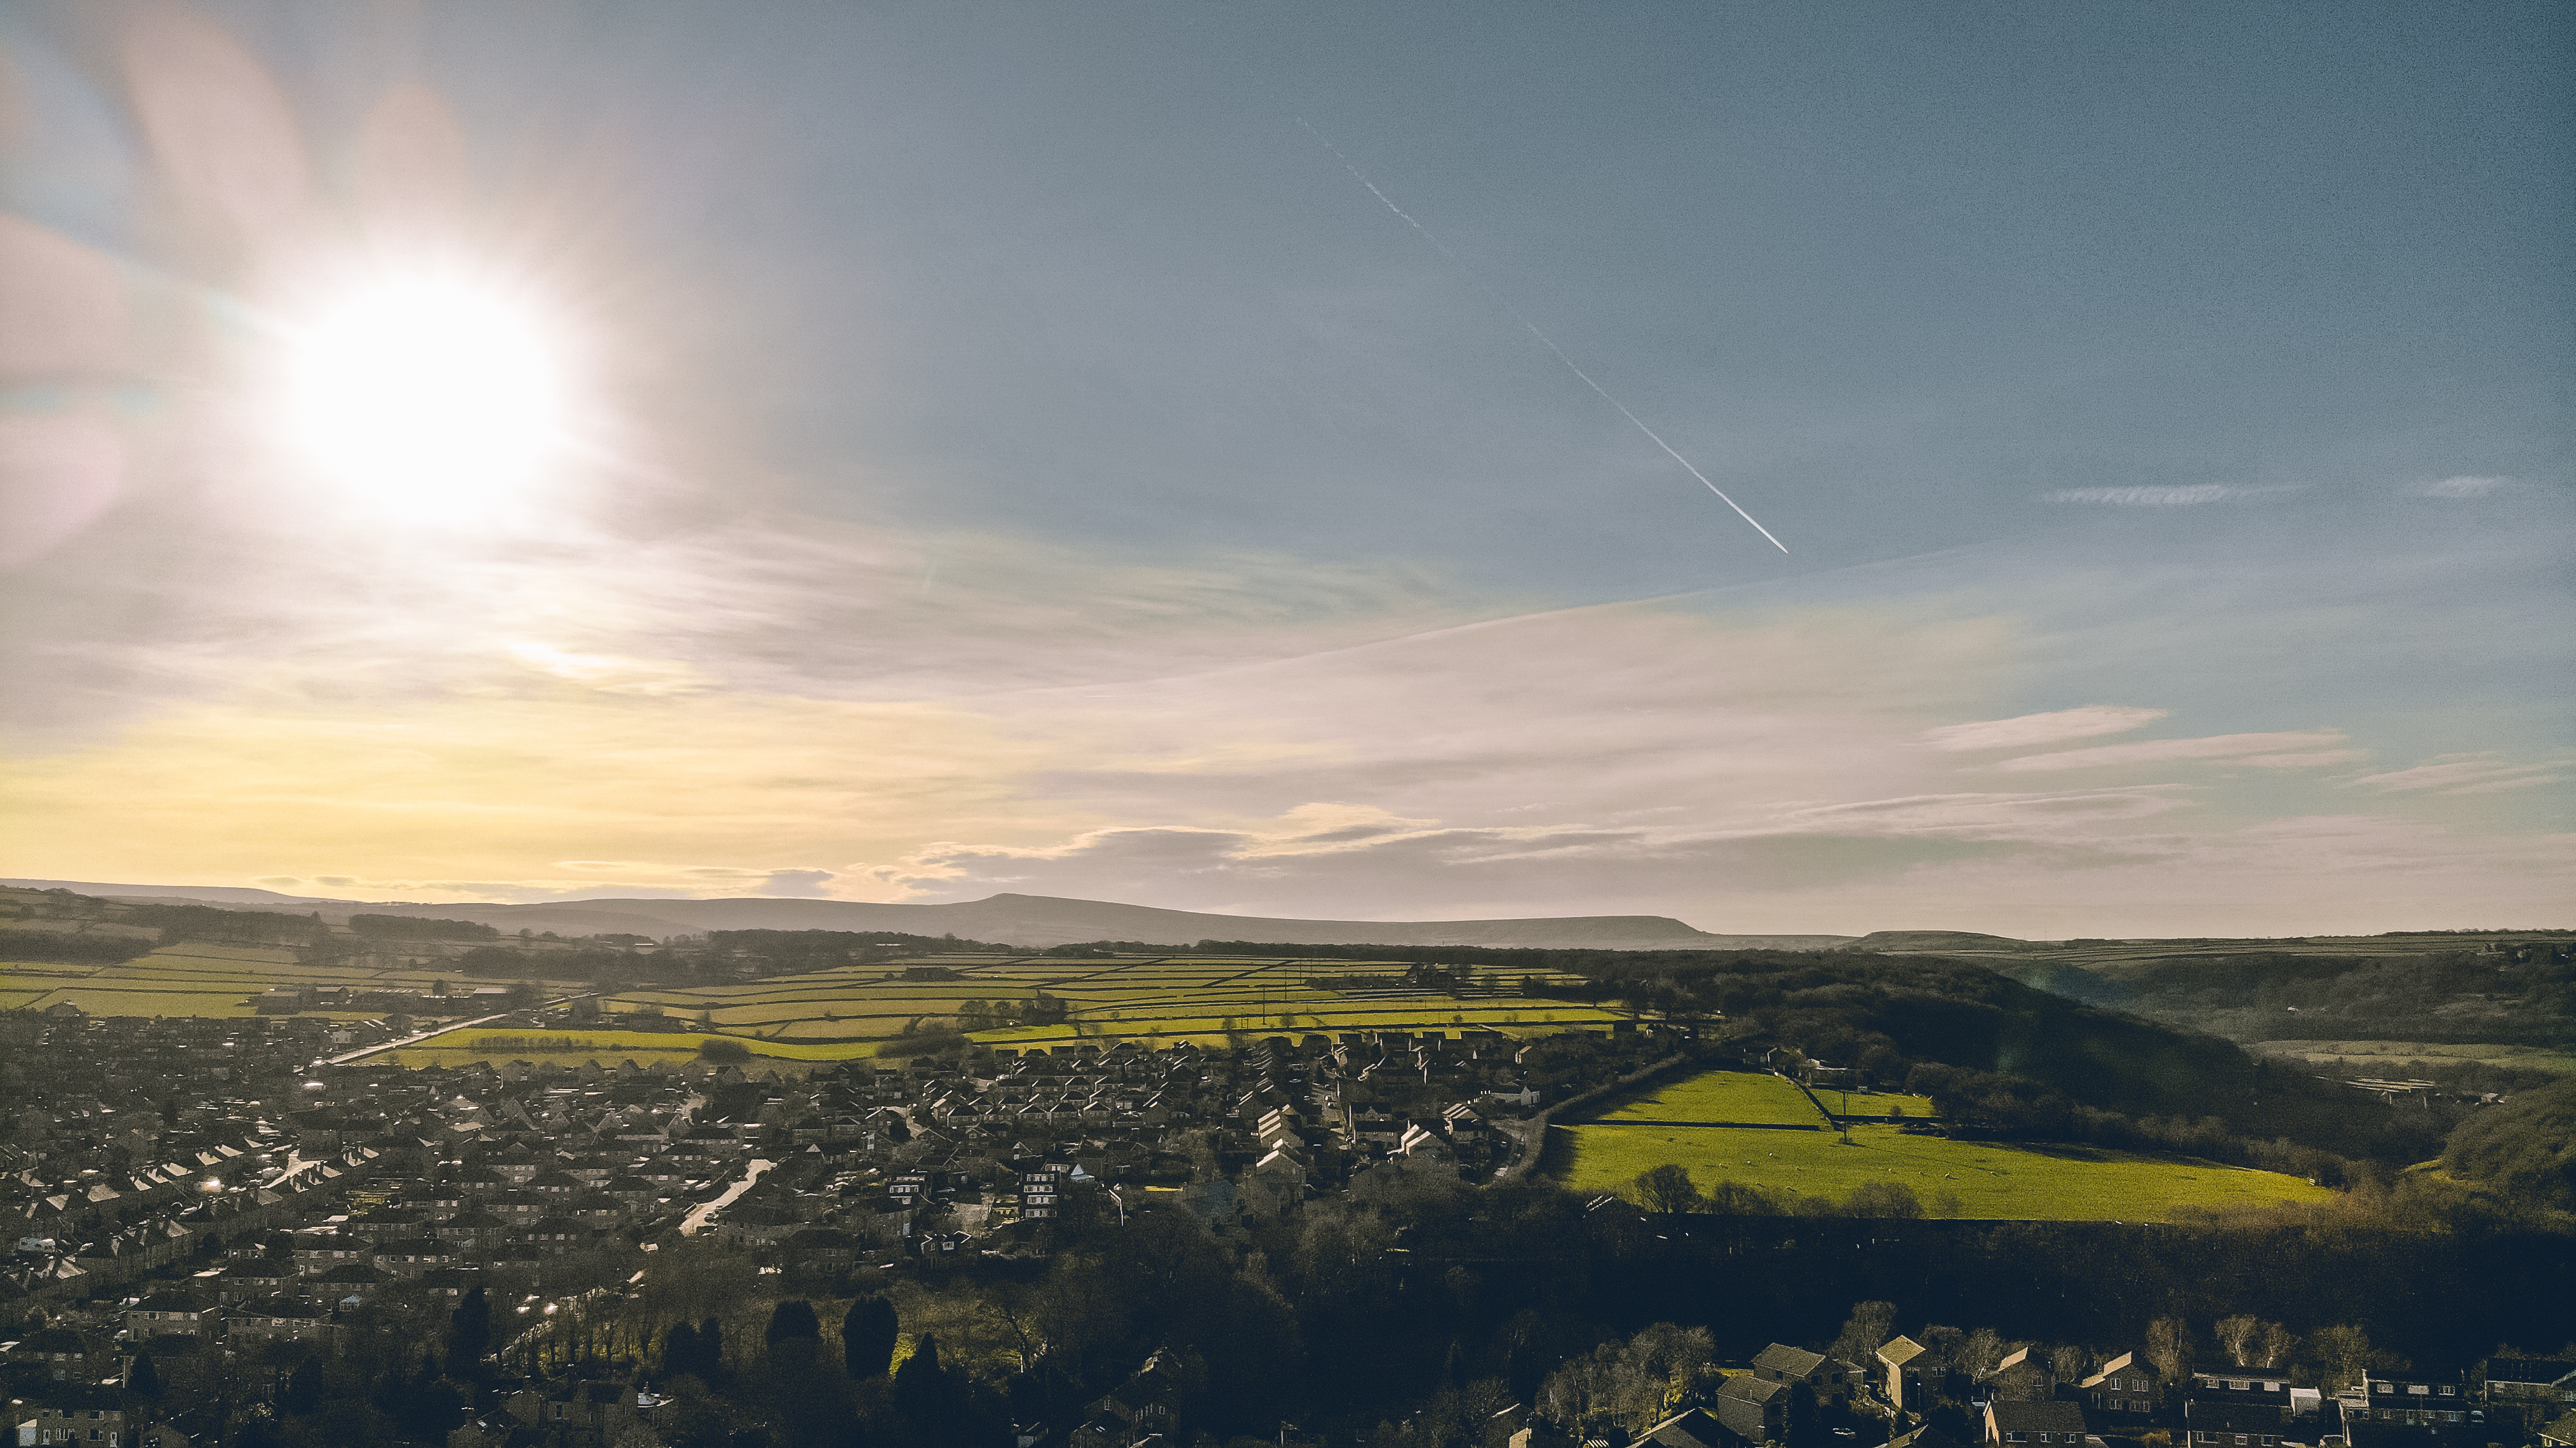 See Honley from a different angle